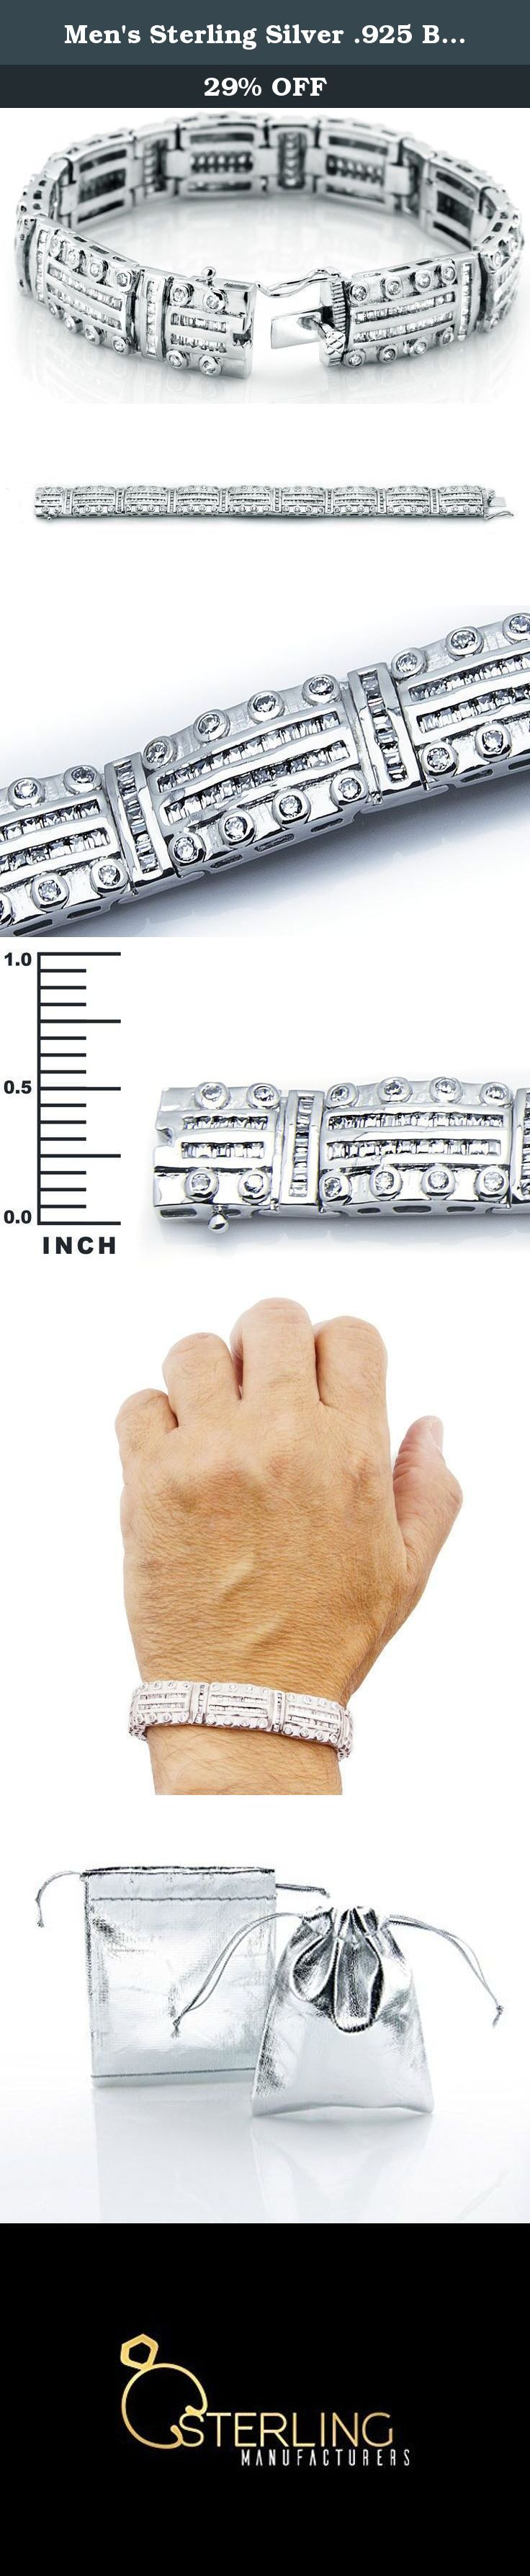 "Men's Sterling Silver .925 Bracelet with 329 Channel set Fancy Baguette and Round shaped Cubic Zirconia (CZ) Stones, Box Lock, Original Design, Platinum Plated. Sizes available 8""9"". Men's Sterling Silver .925 Bracelet with 329 Cubic Zirconia (CZ) Stones and Box Lock, Platinum Plated. Sizes Avail: 8"" 9"". Sleek and stunning, this polished rhodium plated bracelet has secure soldered hinges and flexible links. Weight is Approx 85.2 grams. Ships from the US. ABOUT CUBIC ZIRCONIA (CZ): Cubic..."